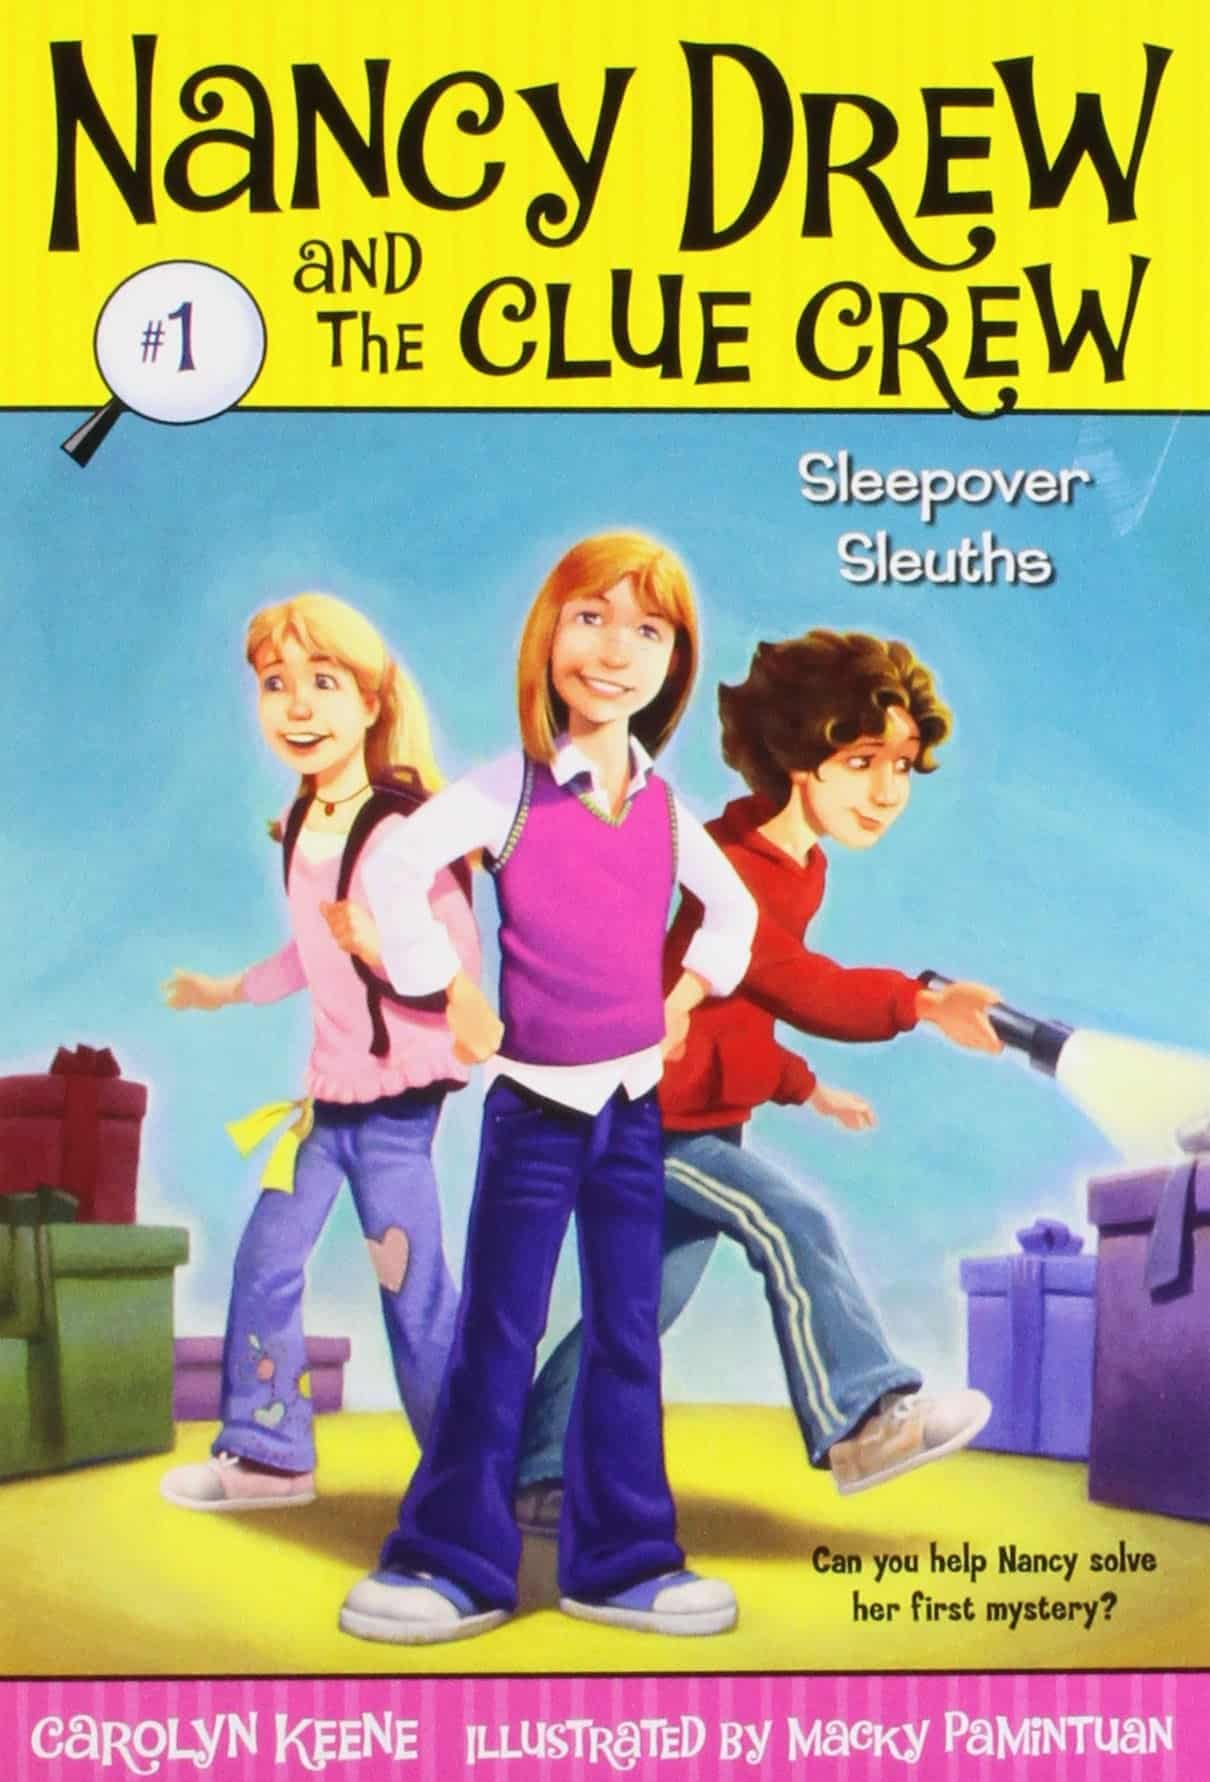 10+ Top Books for Kids to Read this Summer: Sleepover Sleuth Nancy Drew Clue Crew | www.thepinningmama.com